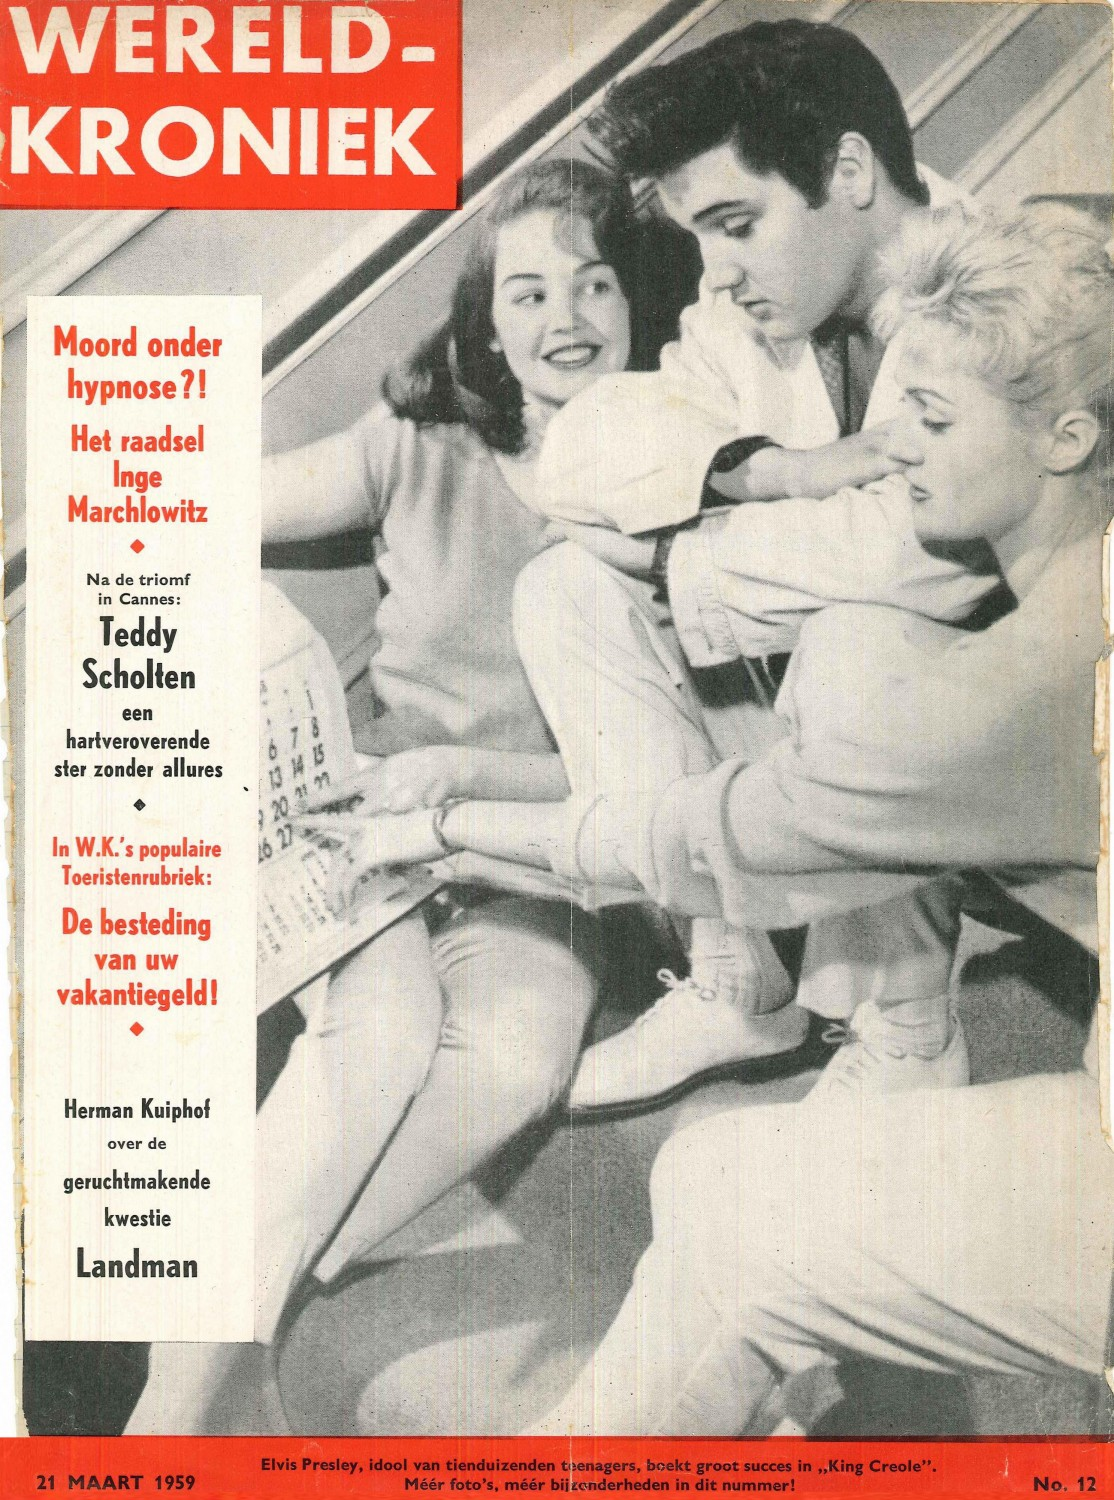 Wereldkroniek nr. 12 (March 1959) 01